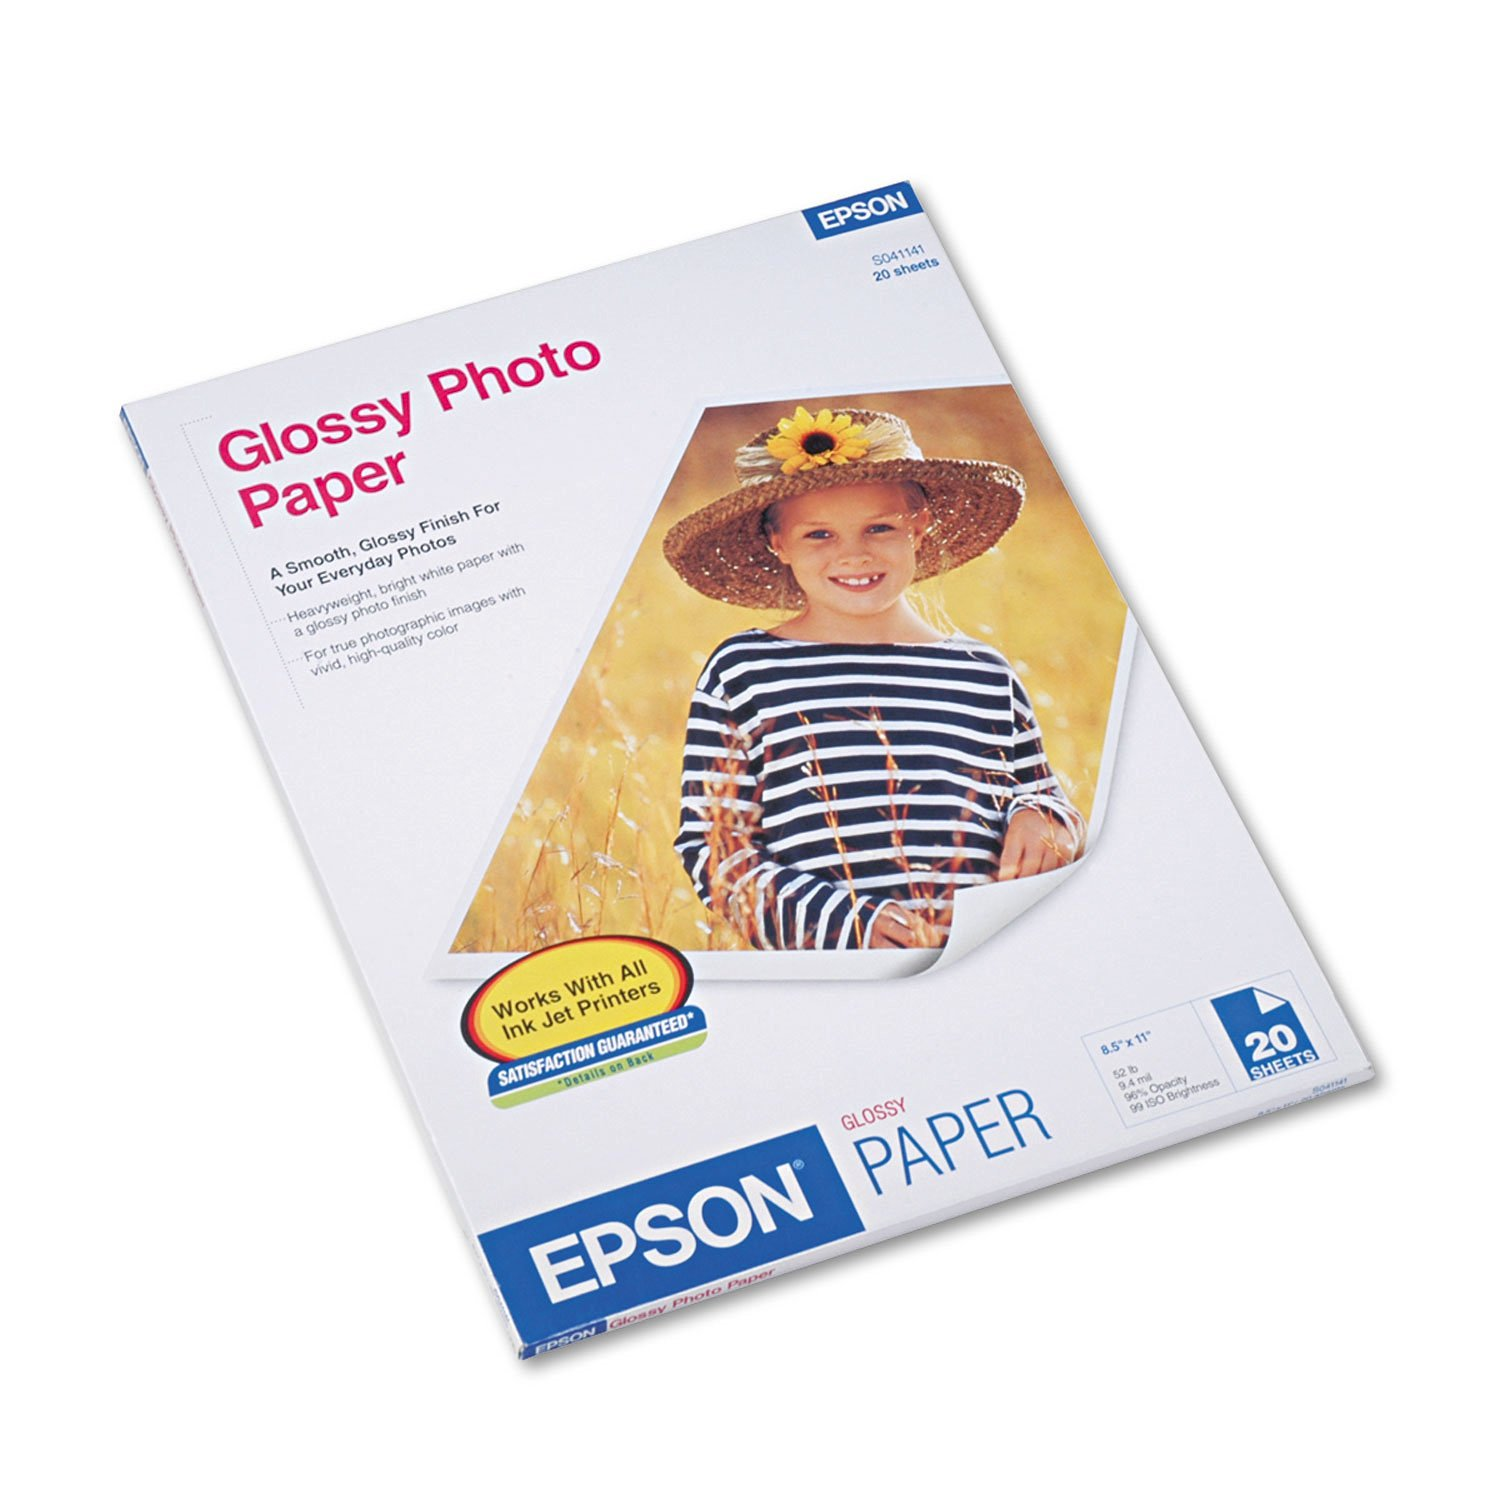 Epson Glossy Photo Paper, 60 lbs., Glossy, 8-1/2 x 11, 20 Sheets/Pack